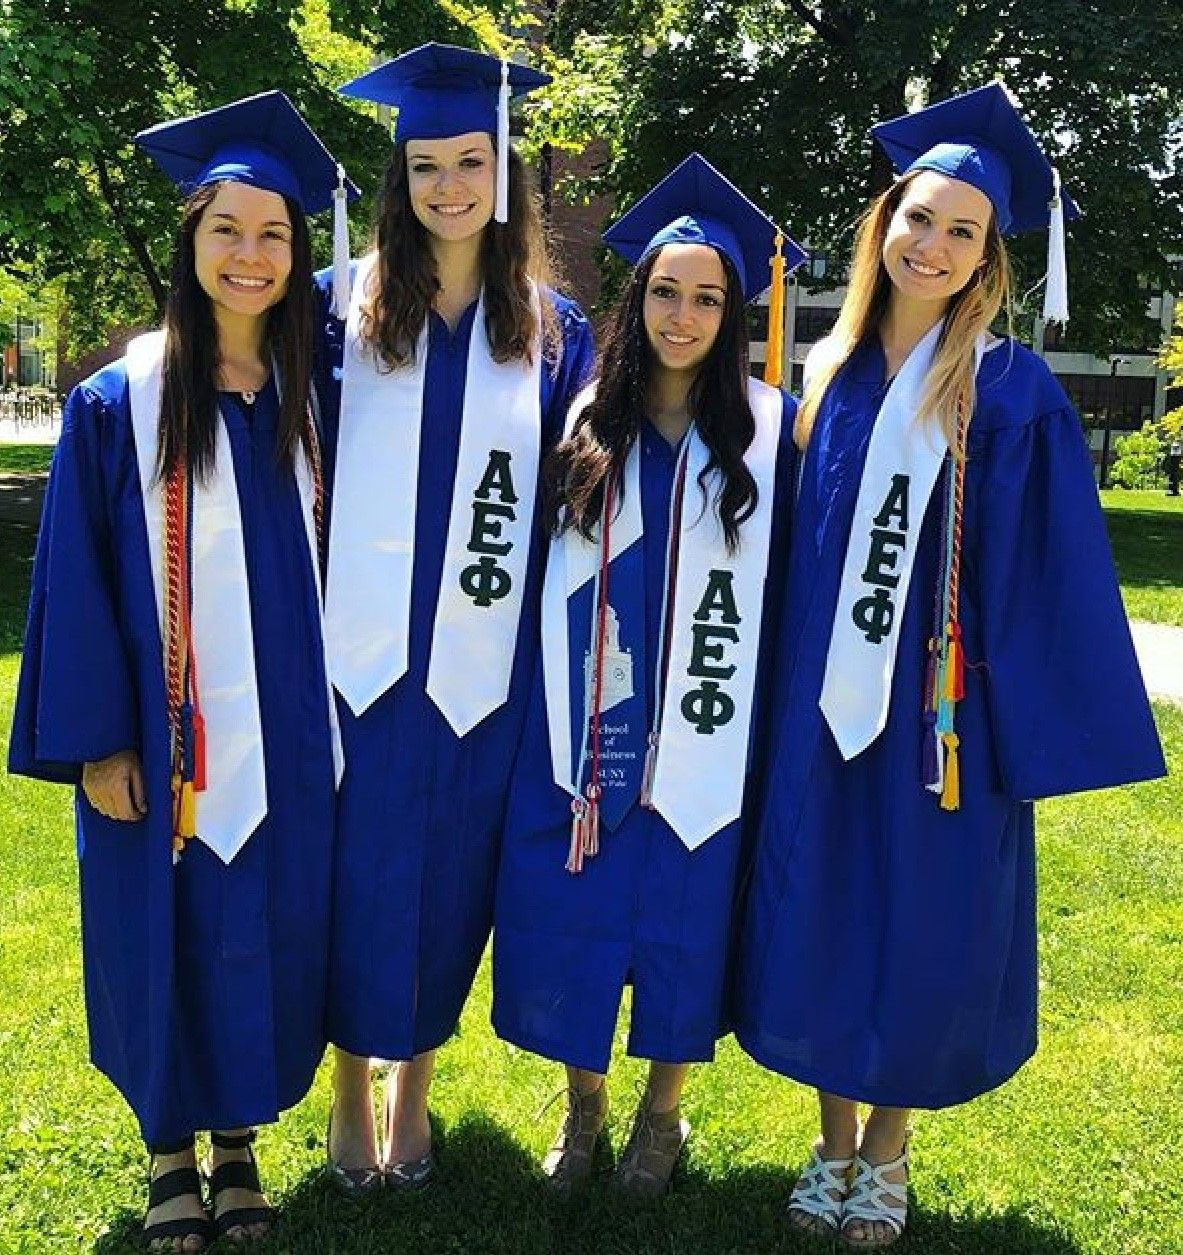 Suny New Paltz Graduation 2020.Congrats To These Suny New Paltz Graduates Phi Graduates